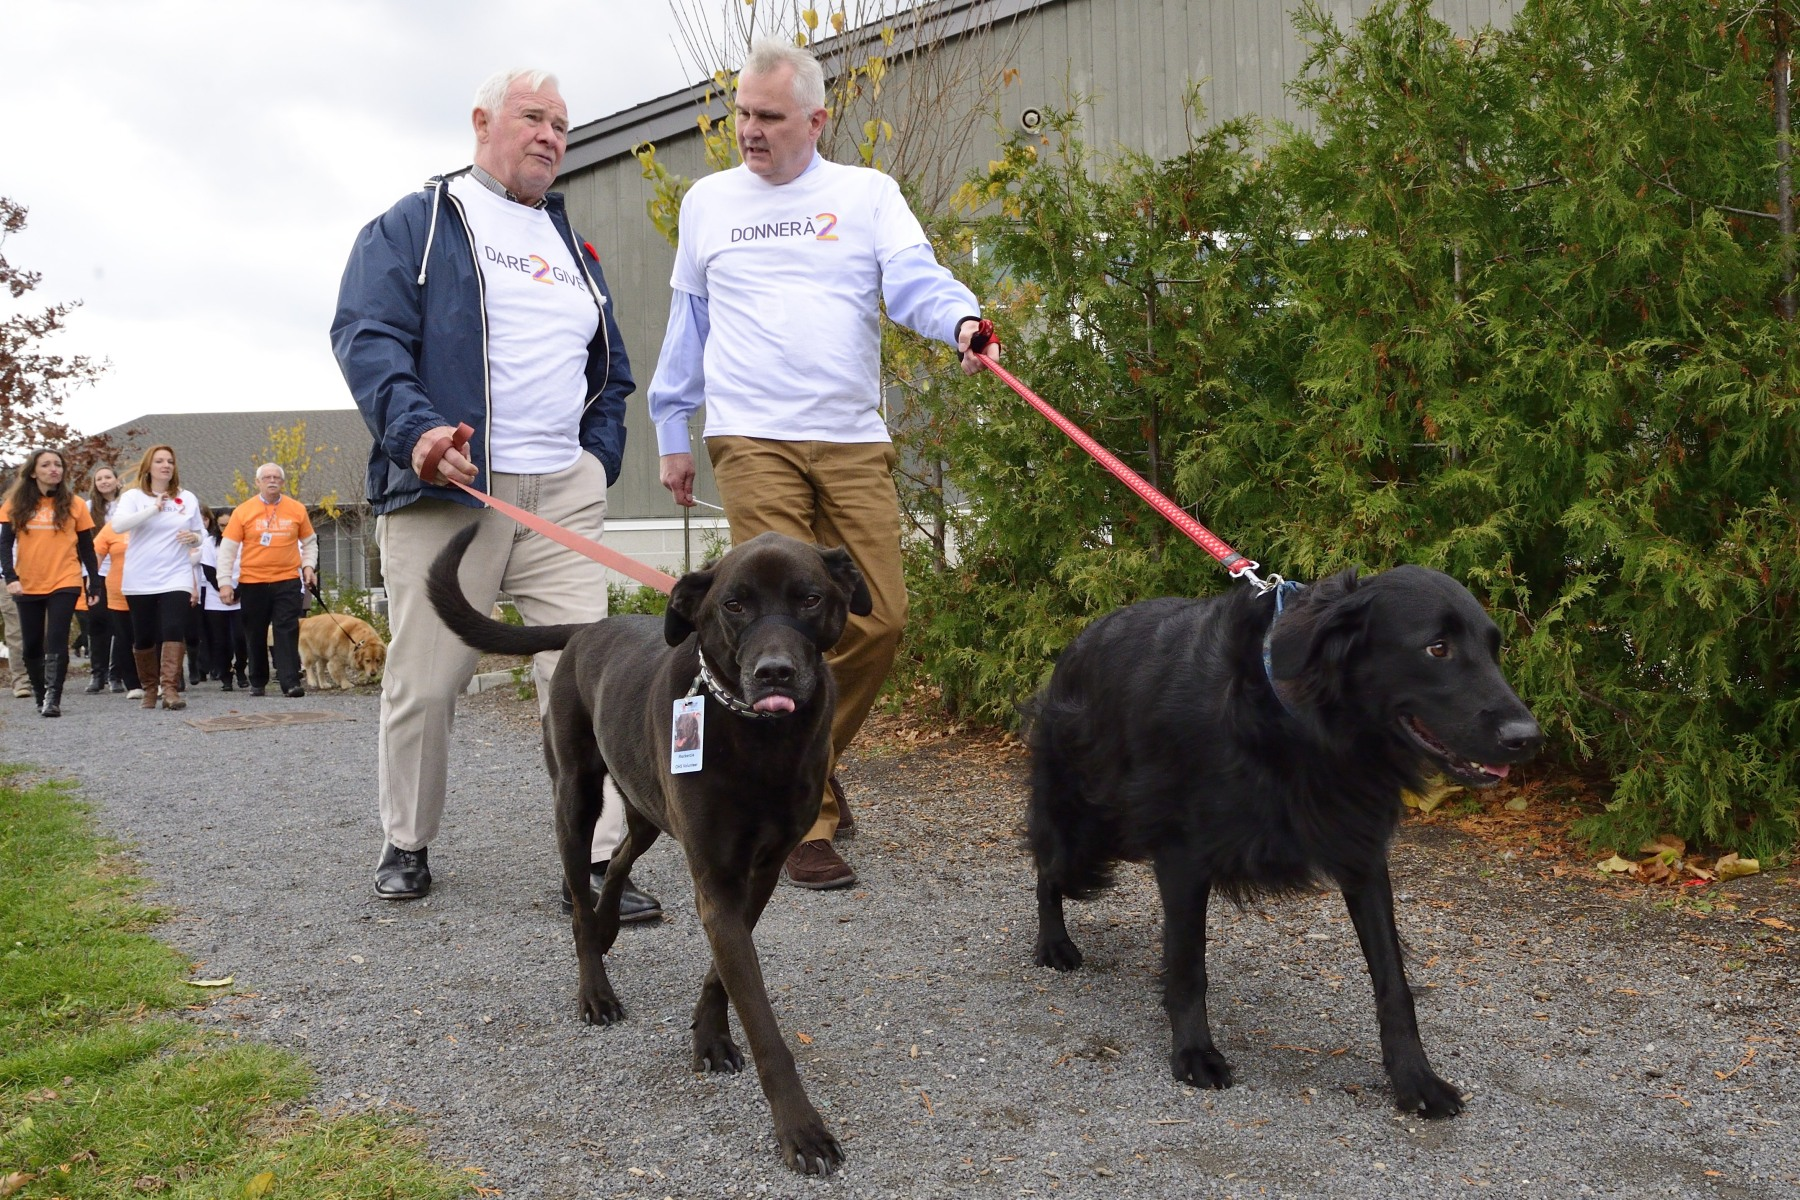 Together, the group participated in the shelter's volunteer Dog Walking Program.